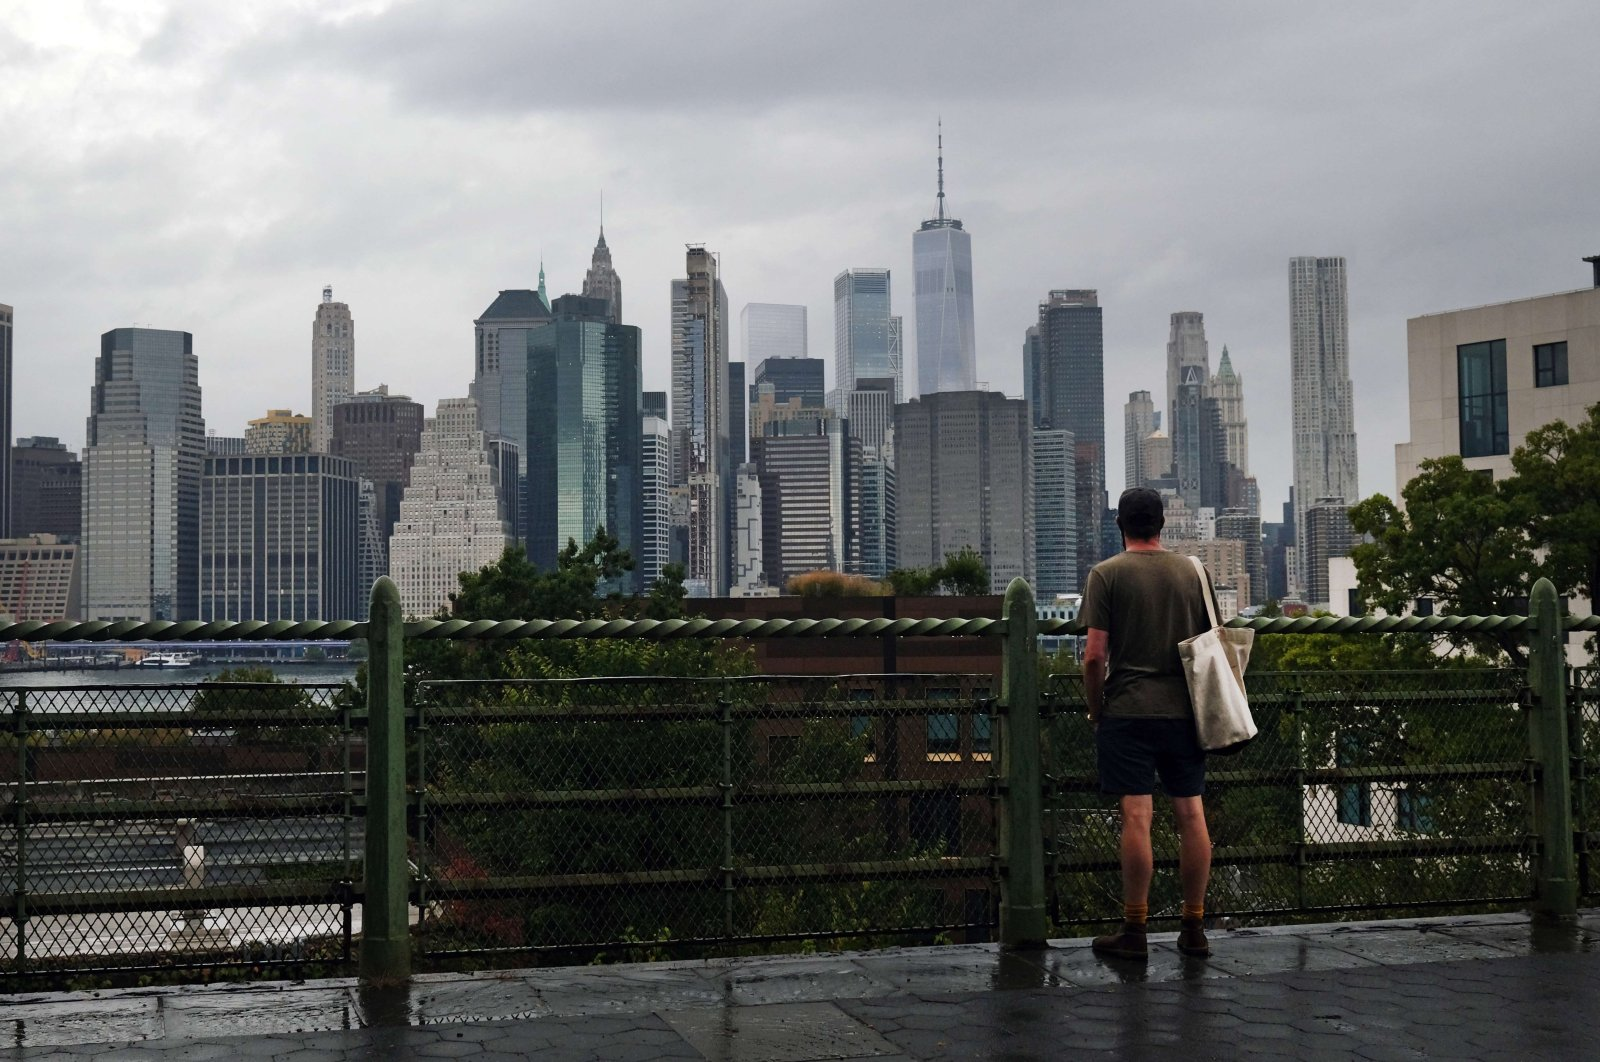 A man looks out at the Manhattan skyline in a Brooklyn neighborhood in New York City, Sept. 29, 2020. (AFP Photo)